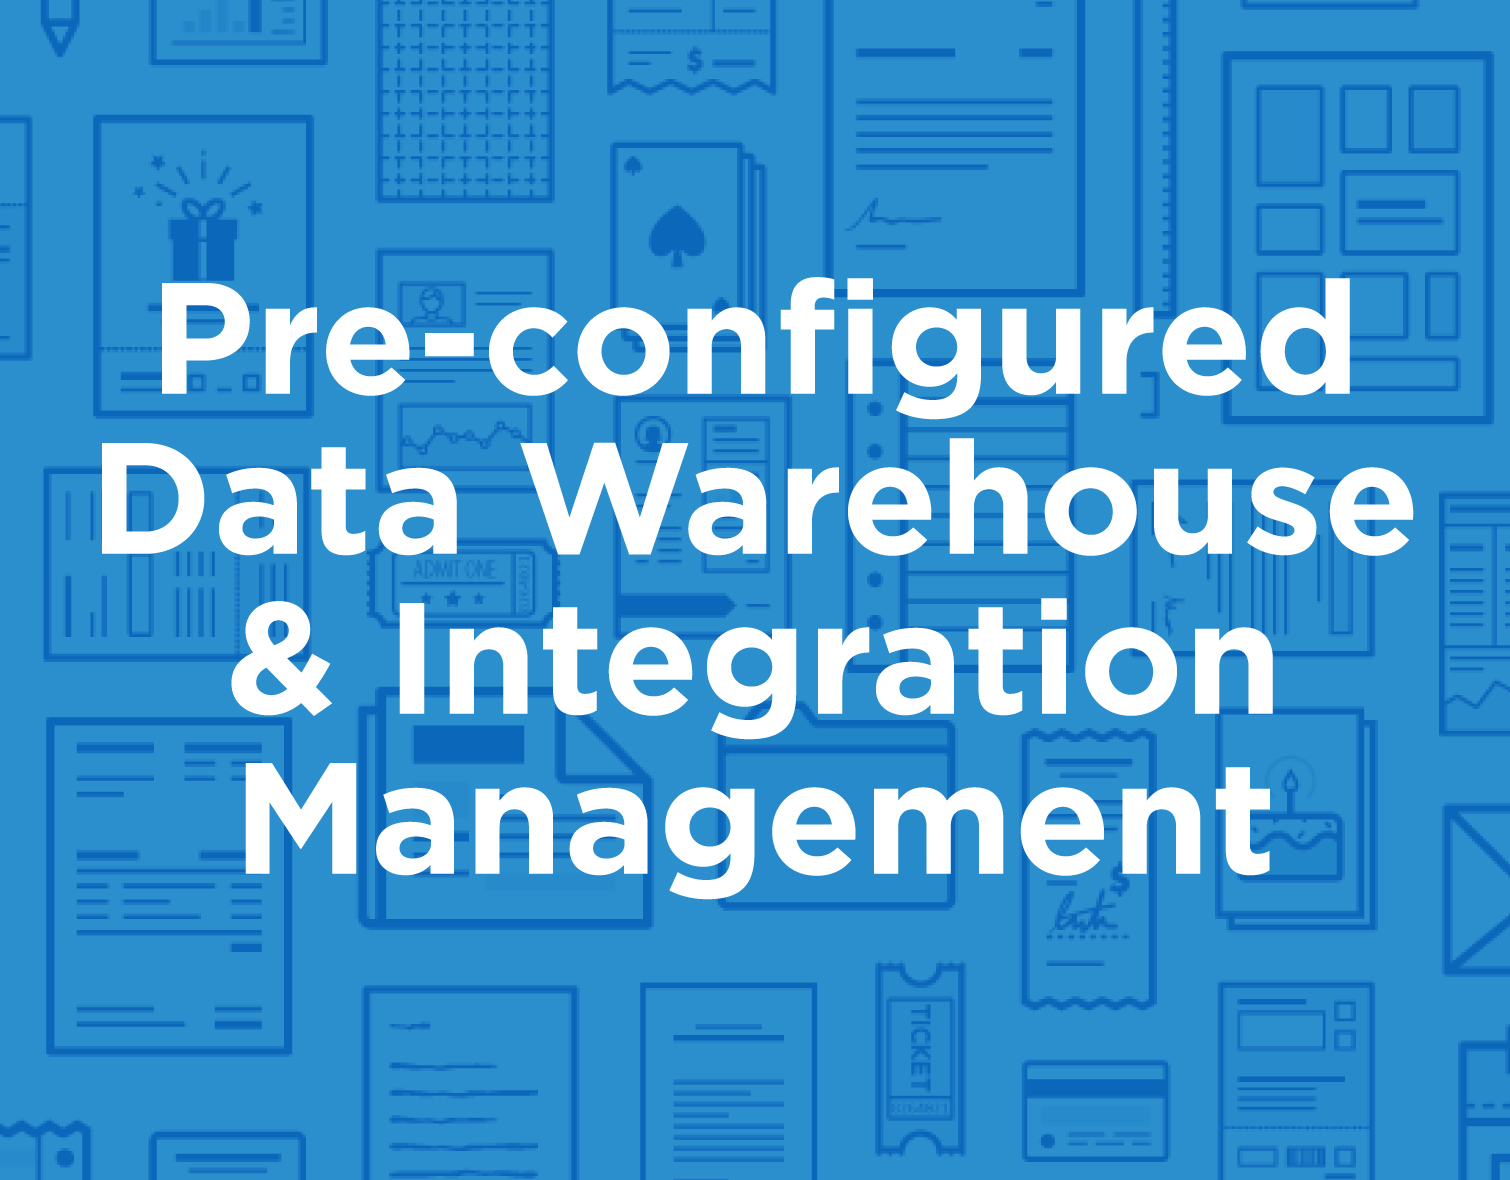 icon_products_Pre-configured-Data-Warehouse-&-Integration-Management.jpg